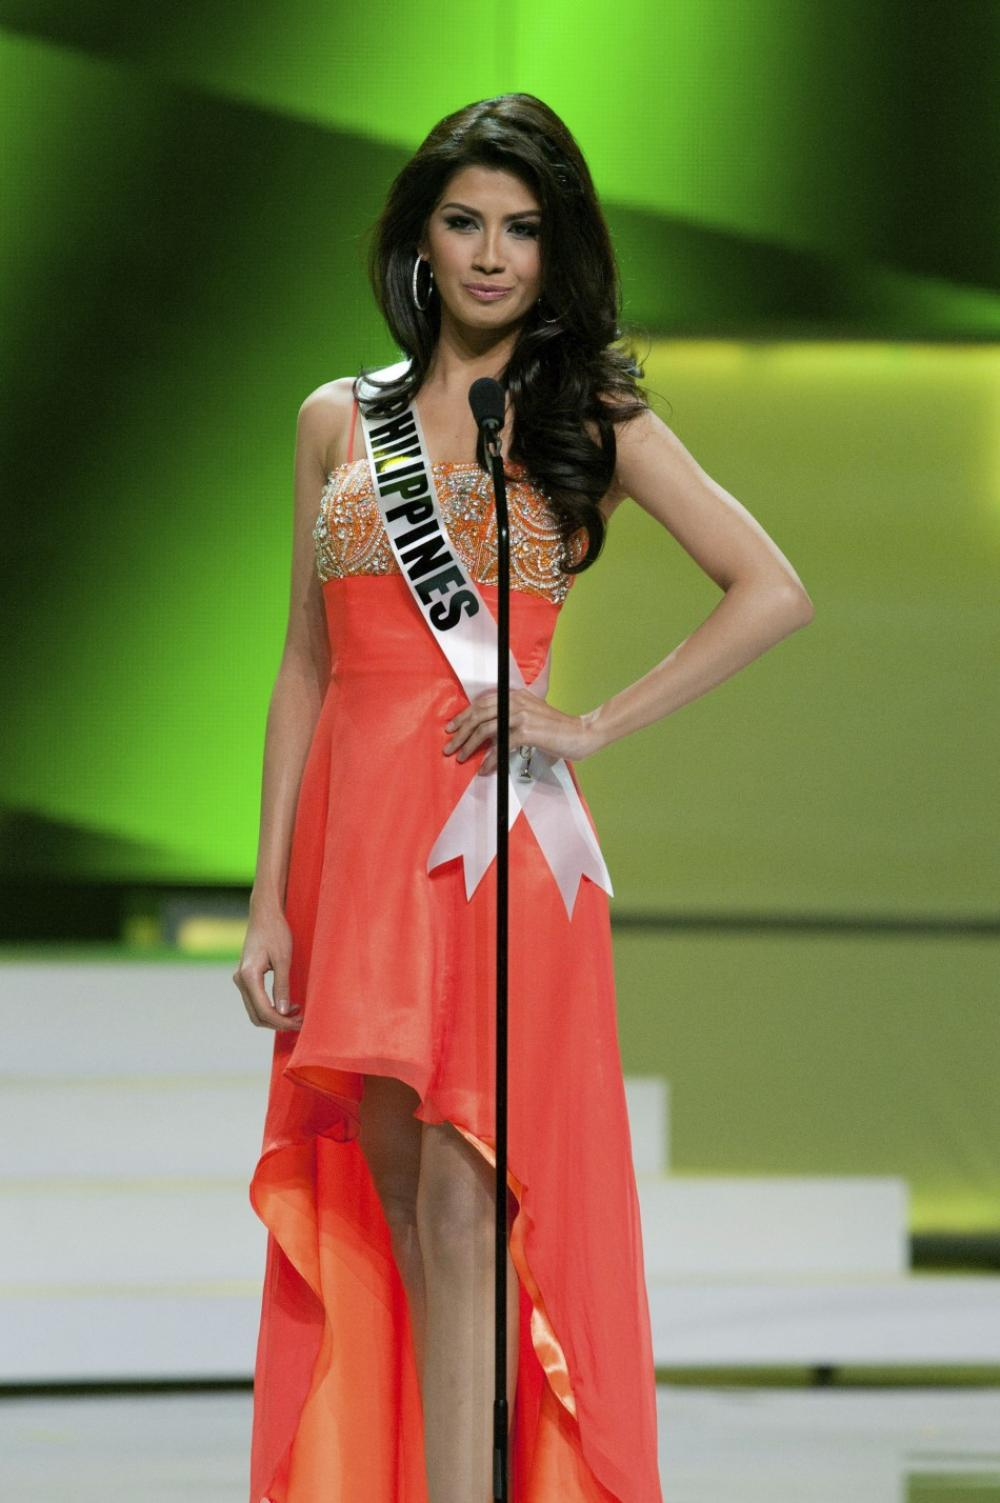 Shamcey Supsup host of Miss Universe 2012 Behind the Scenes